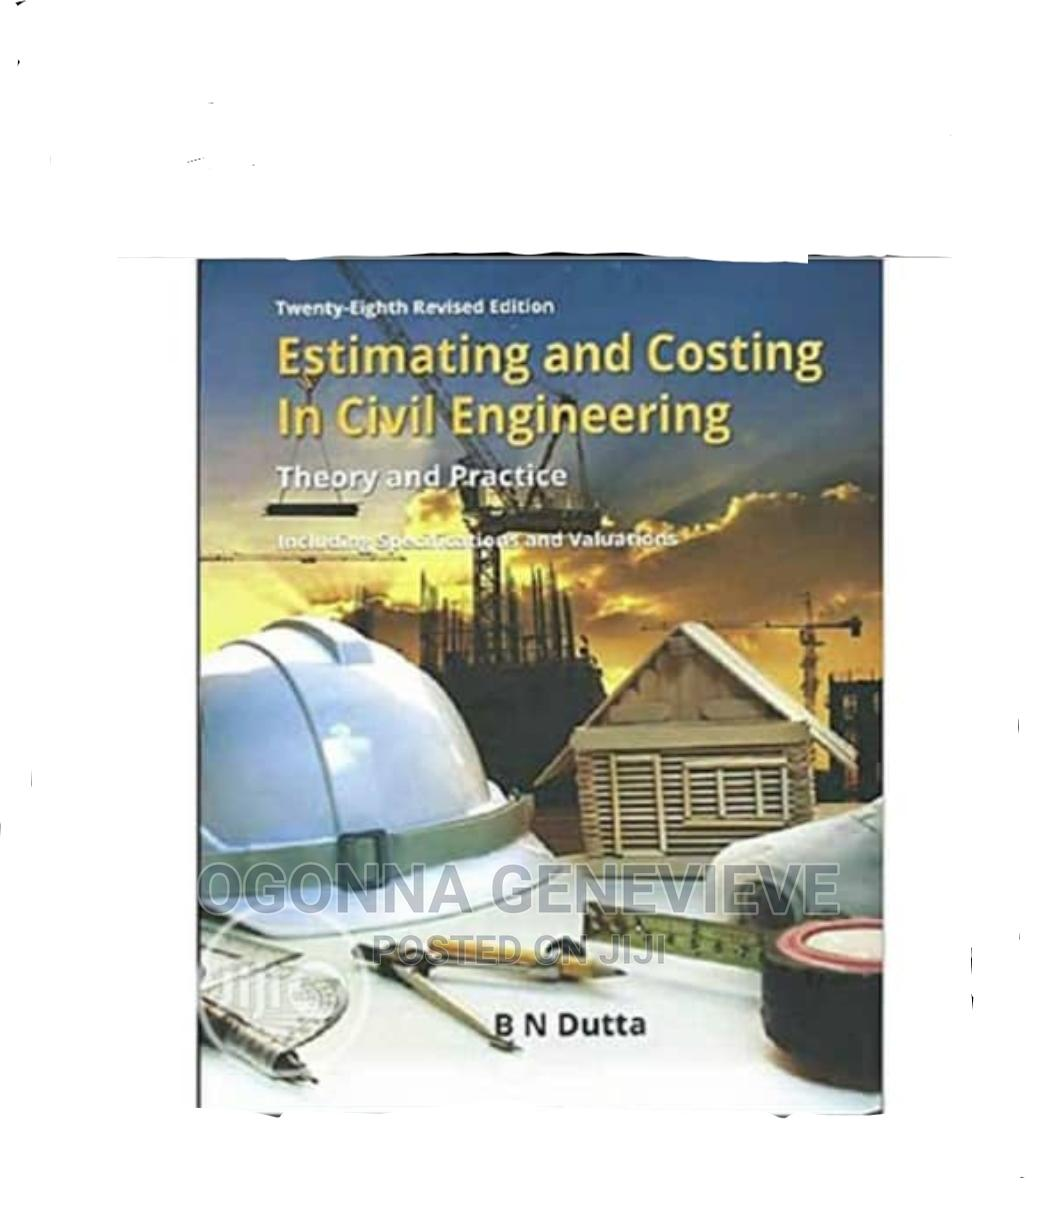 Estimating and Costing in Civil Engineering 25th Edition